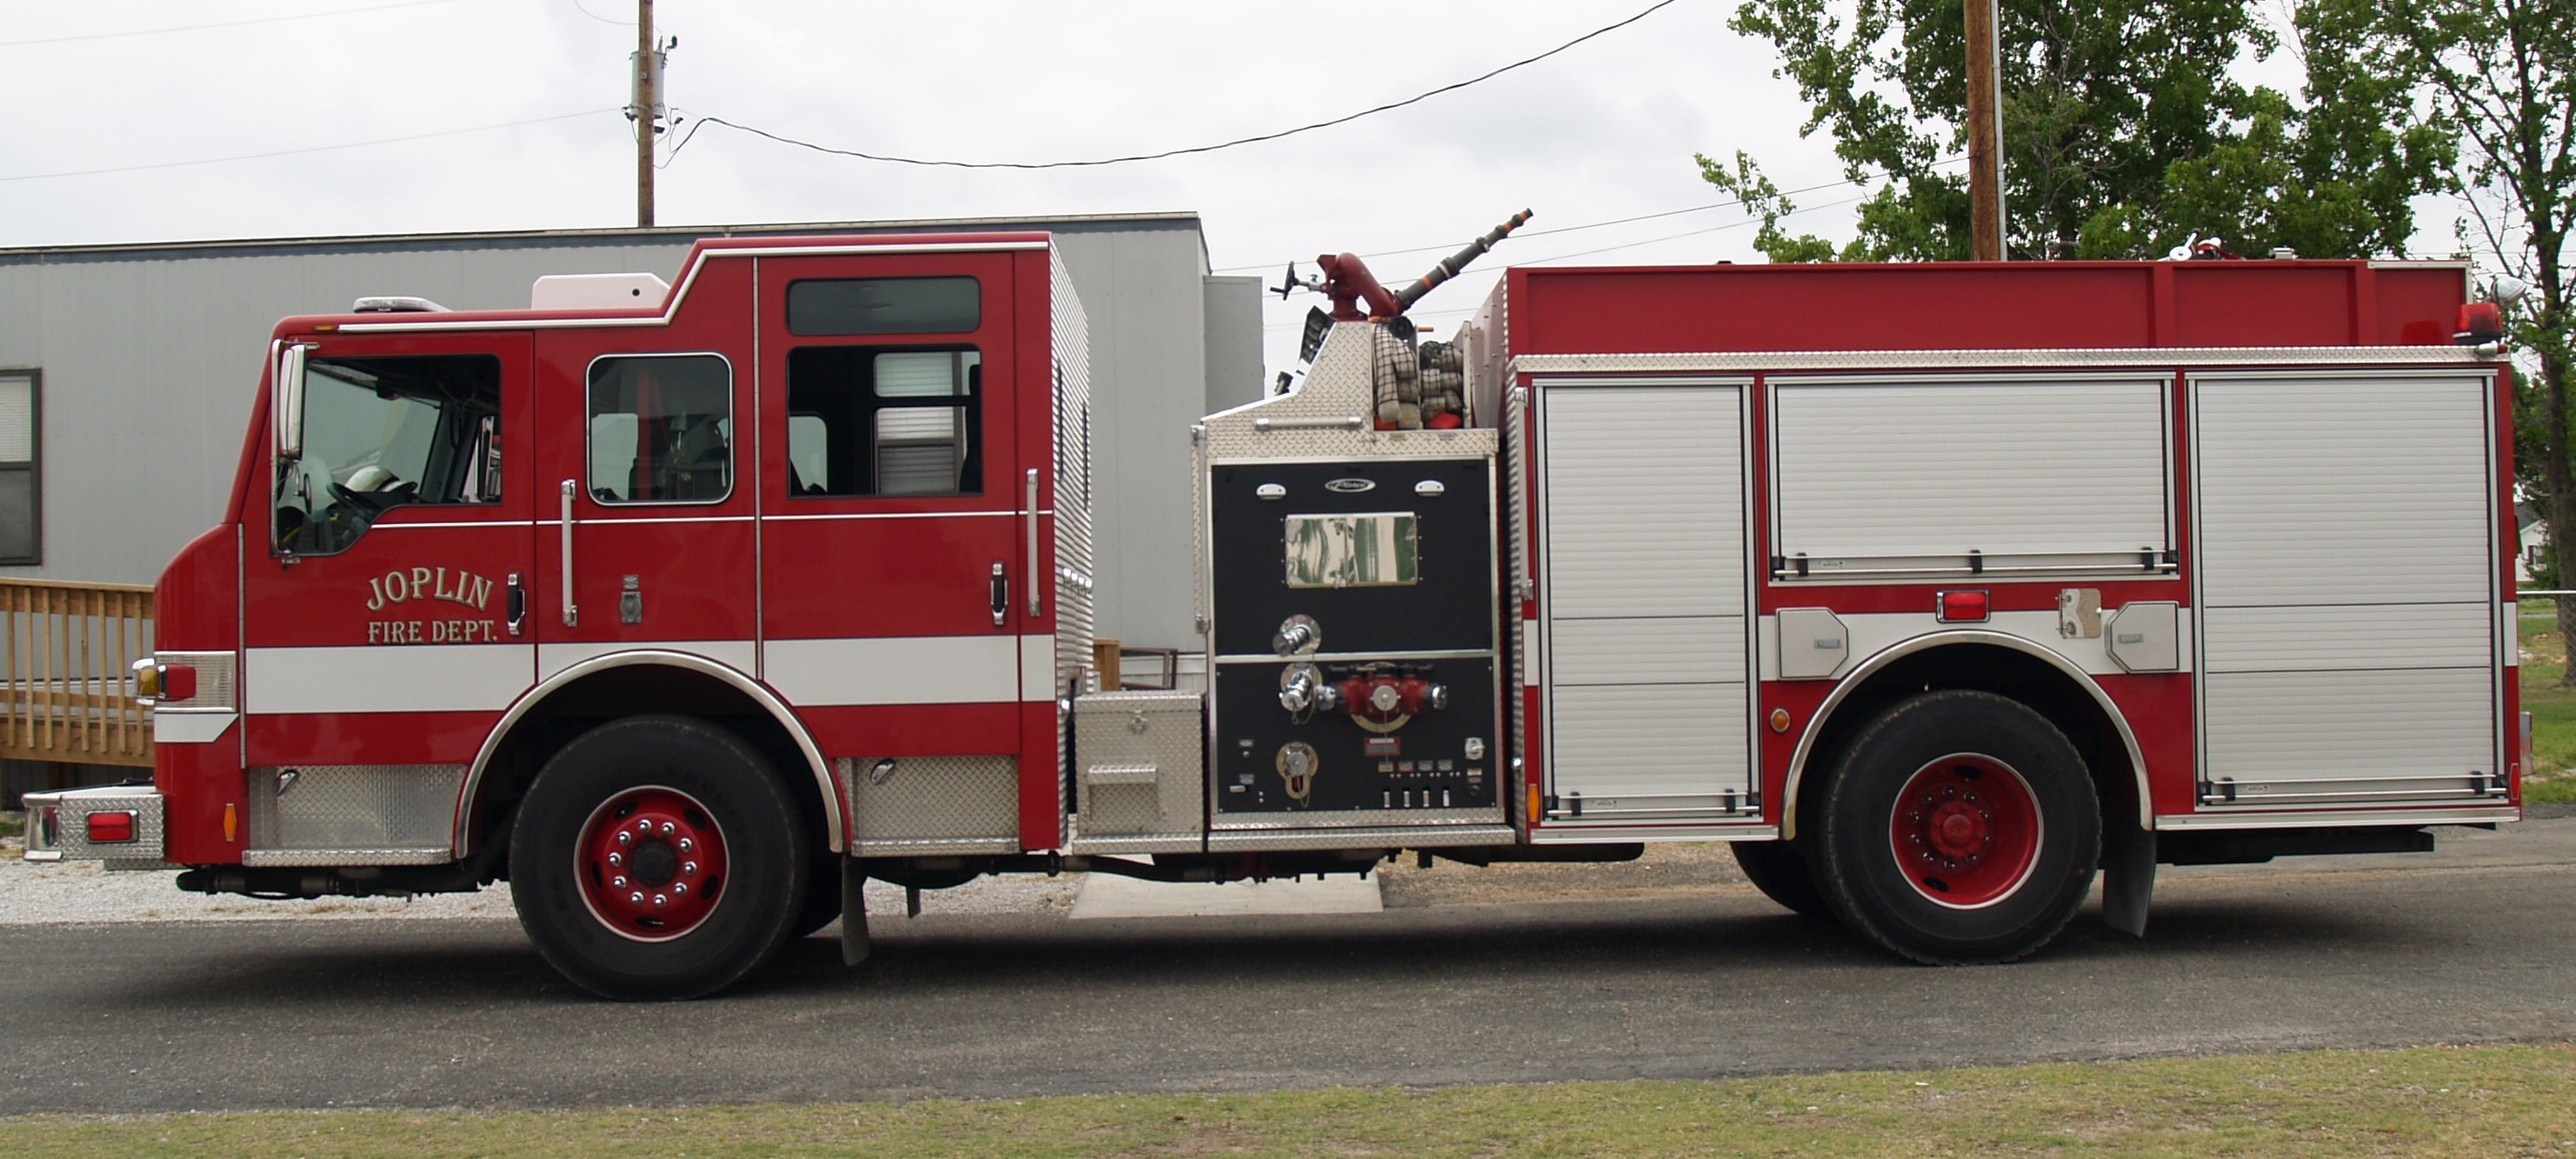 Joplin Fire - Engine 2